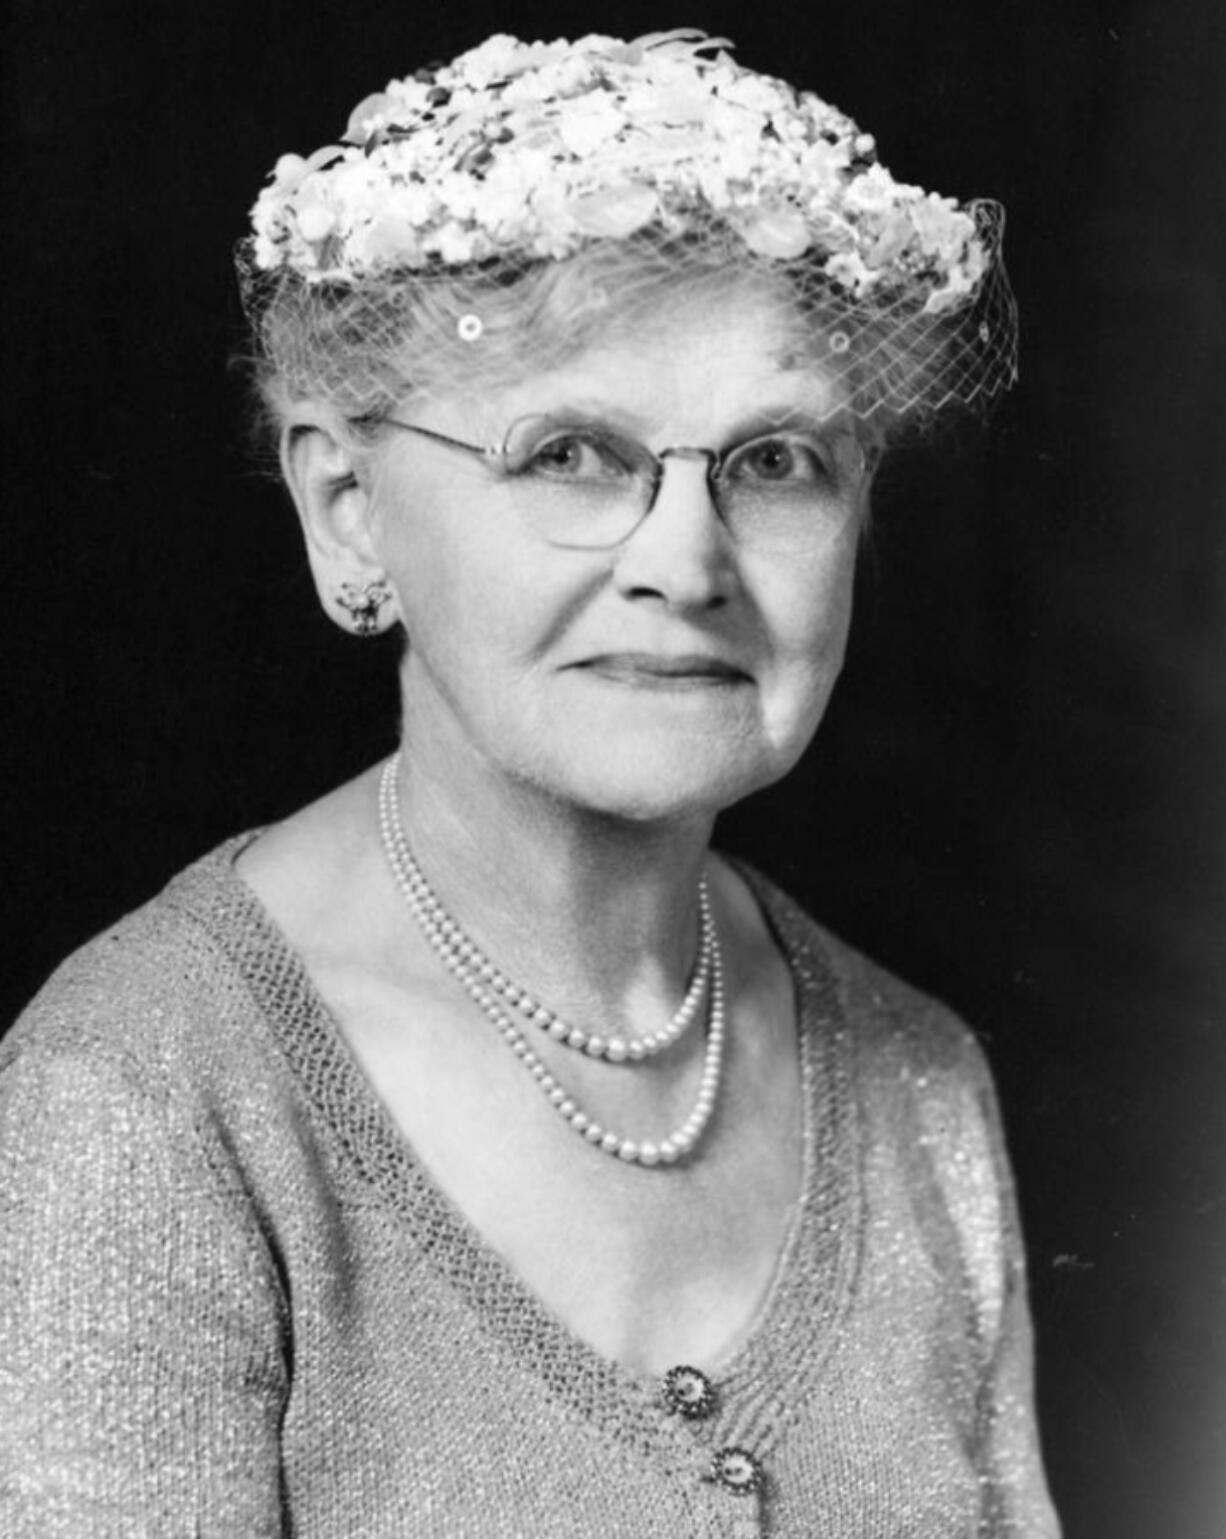 Mrs. Hilma Powers contributed $10 to the Vancouver Soroptimist club to have a photo taken wearing Mamie Eisenhower's hat. The first lady donated the hat shown to support the organization's 1955 fundraiser. Powers' money went toward restoring the Vancouver Barracks Officers' Quarters.